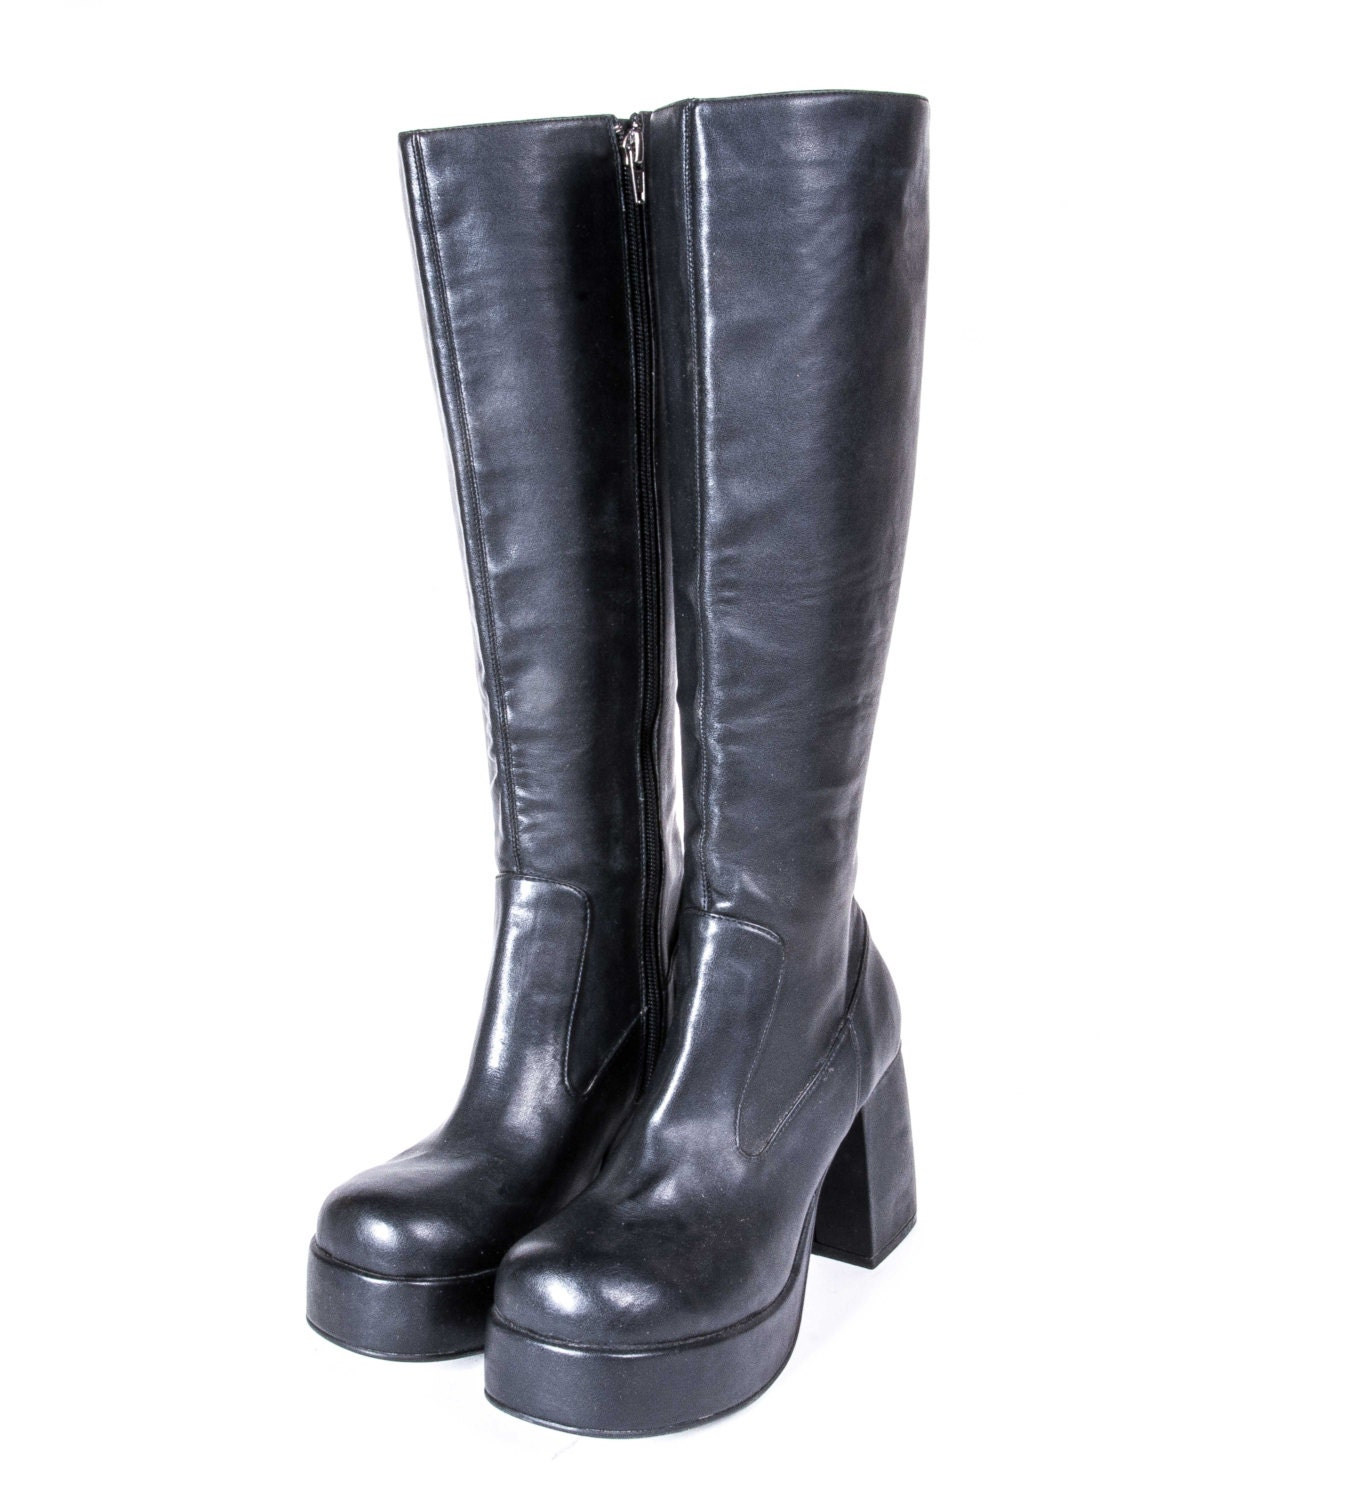 Womens Boots US Sale 1990s Skechers boot Womens size 8.5 ... |1990s Womens Boots